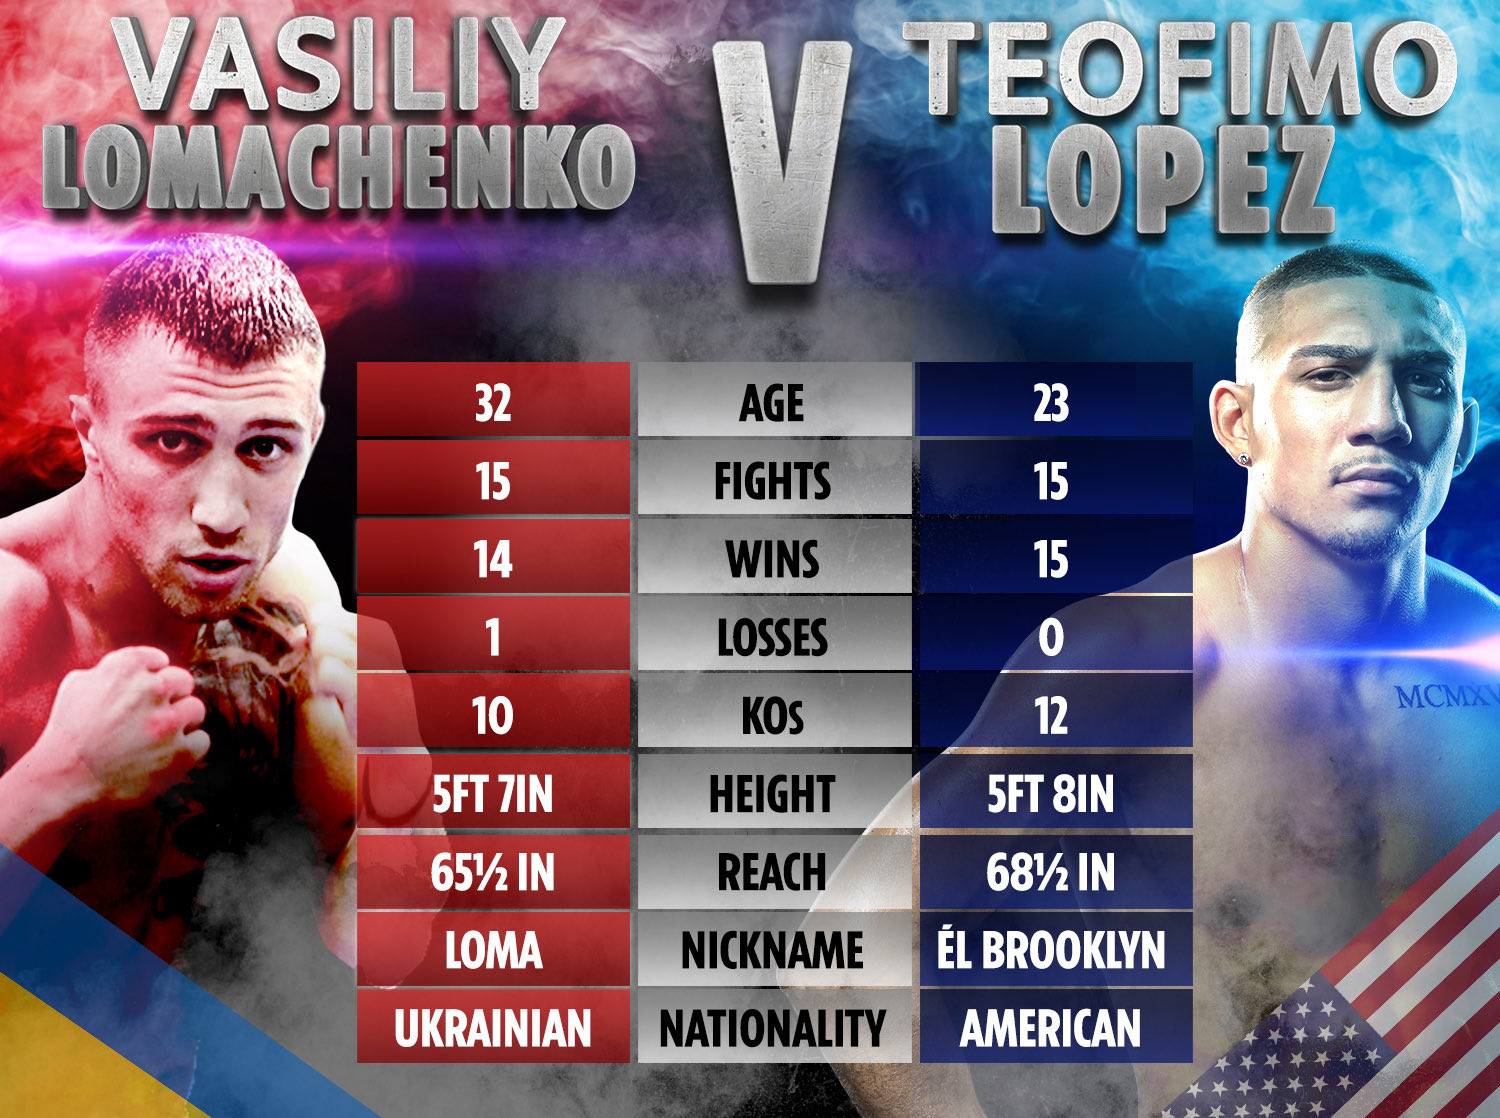 Lomachenko vs Lopez - Tale Of the Tape